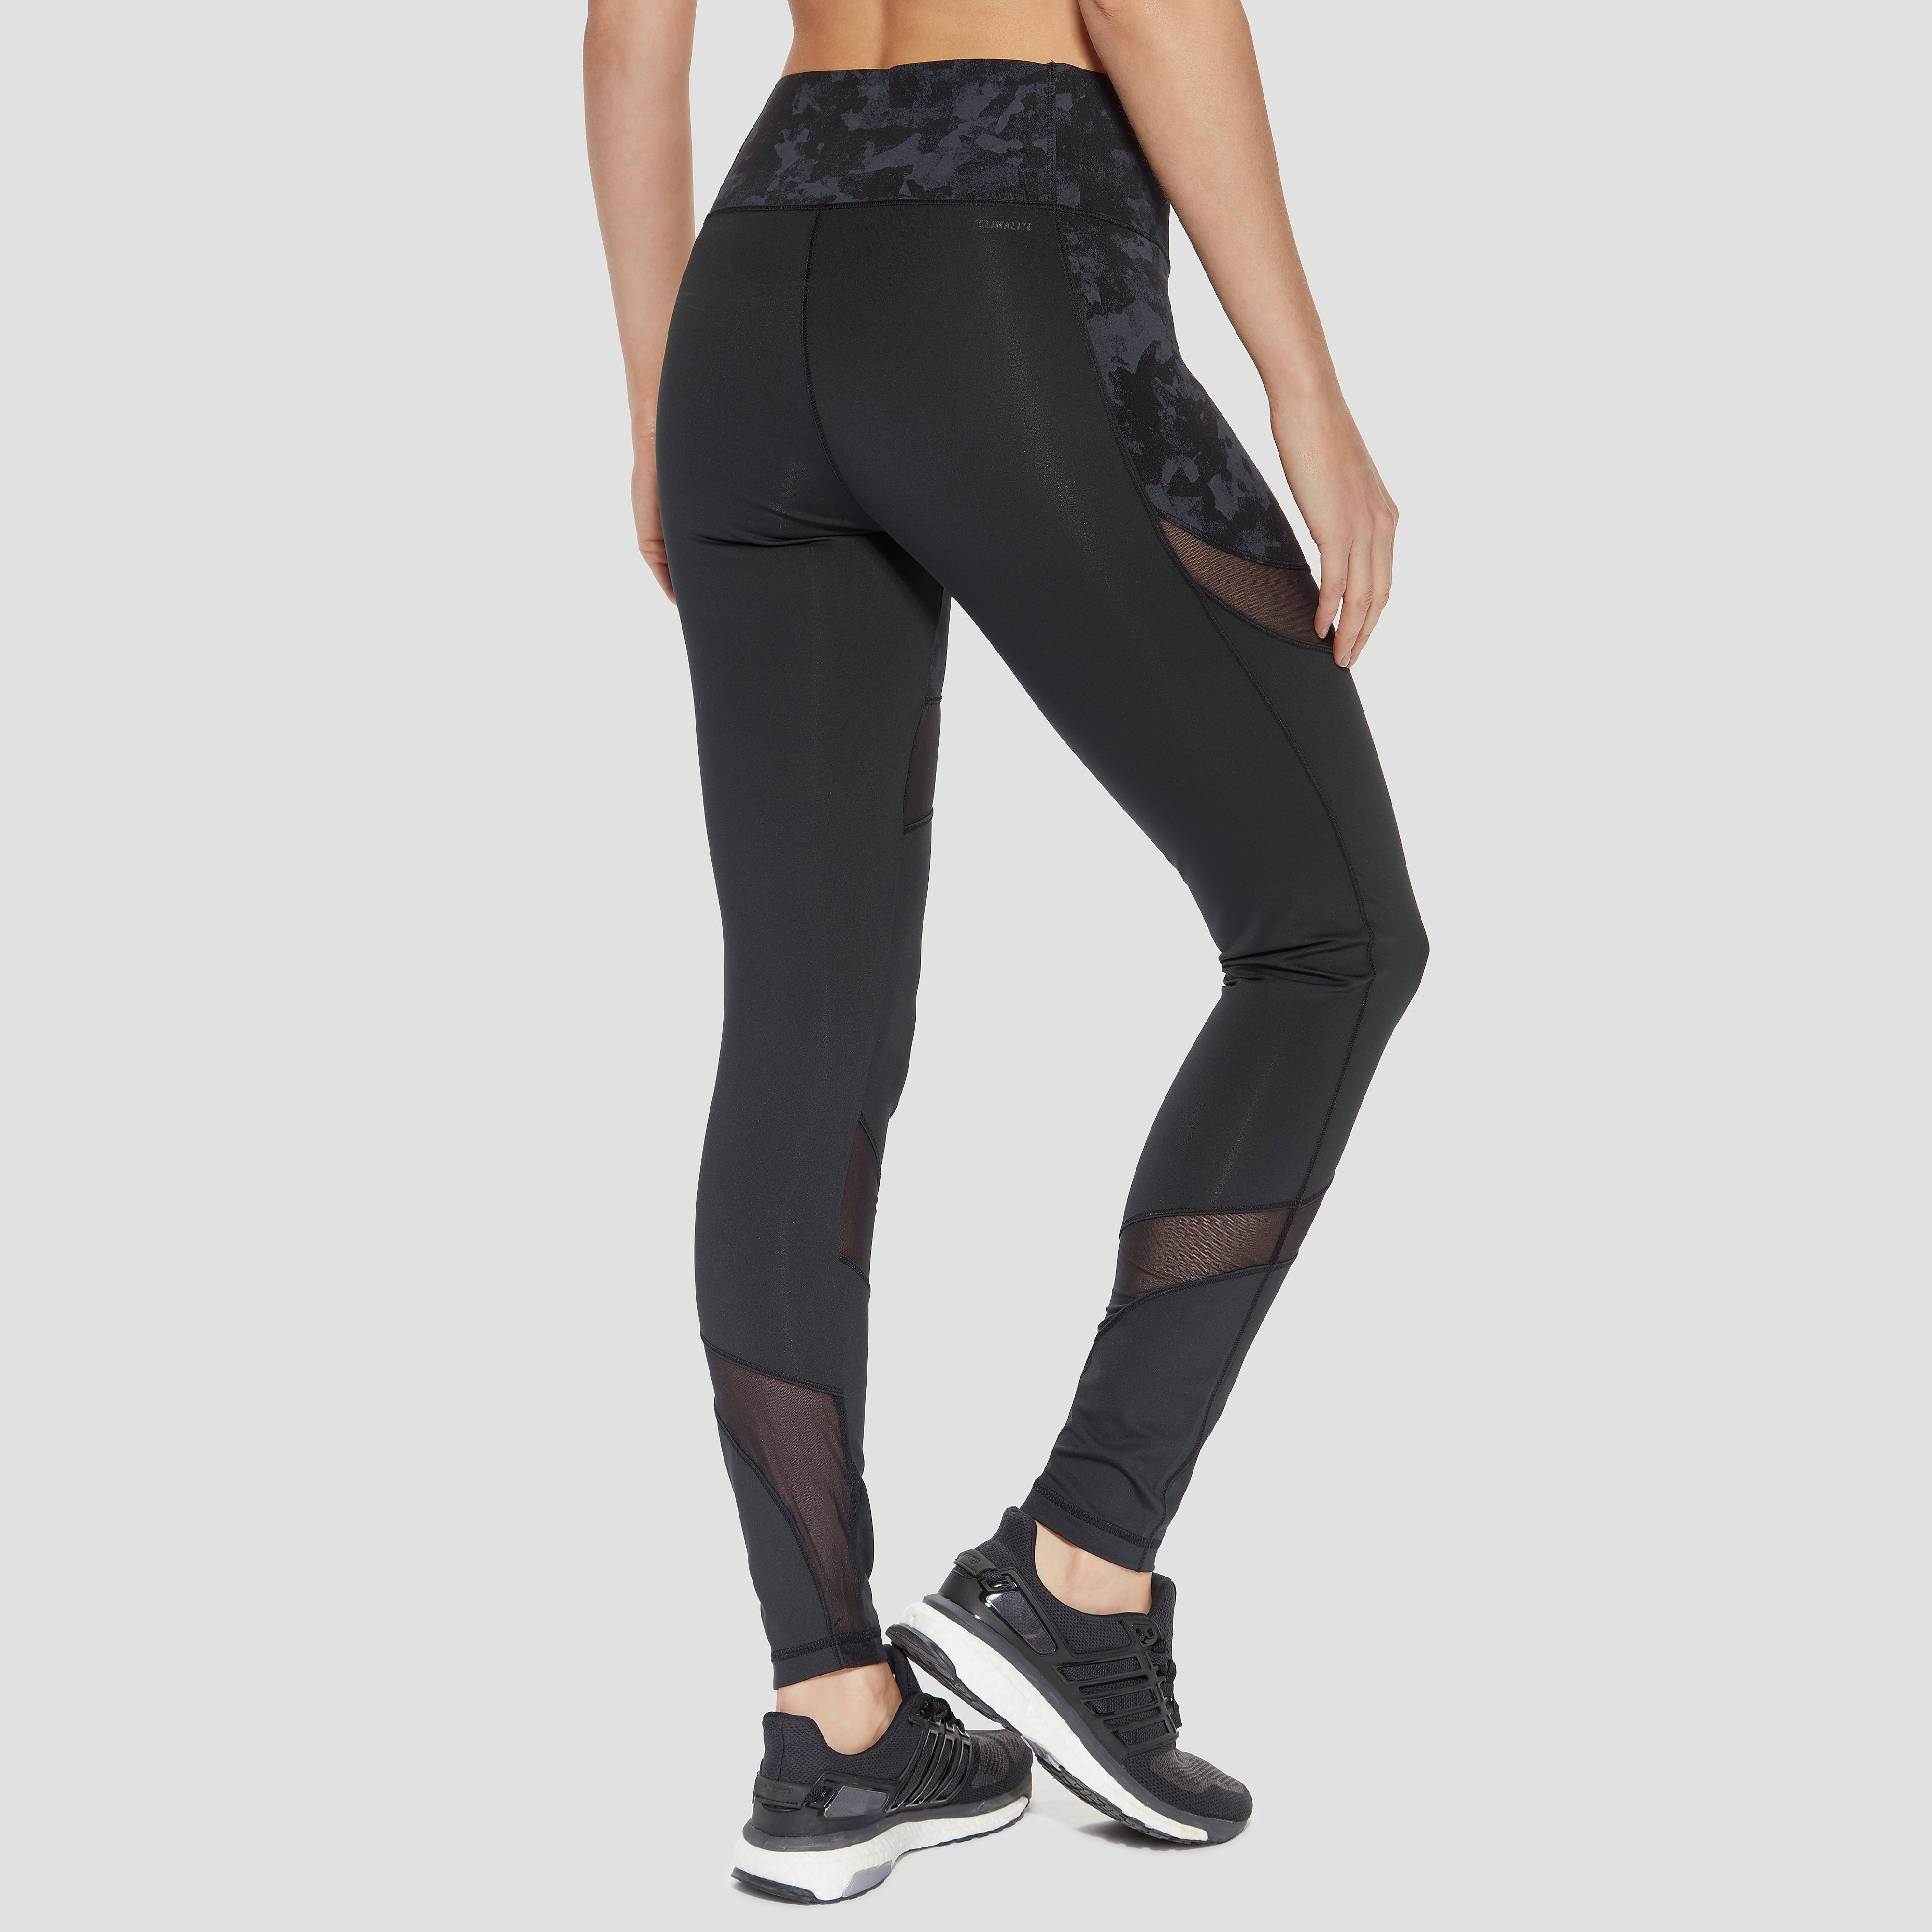 adidas Women's Ultimate High-Rise Printed Tights